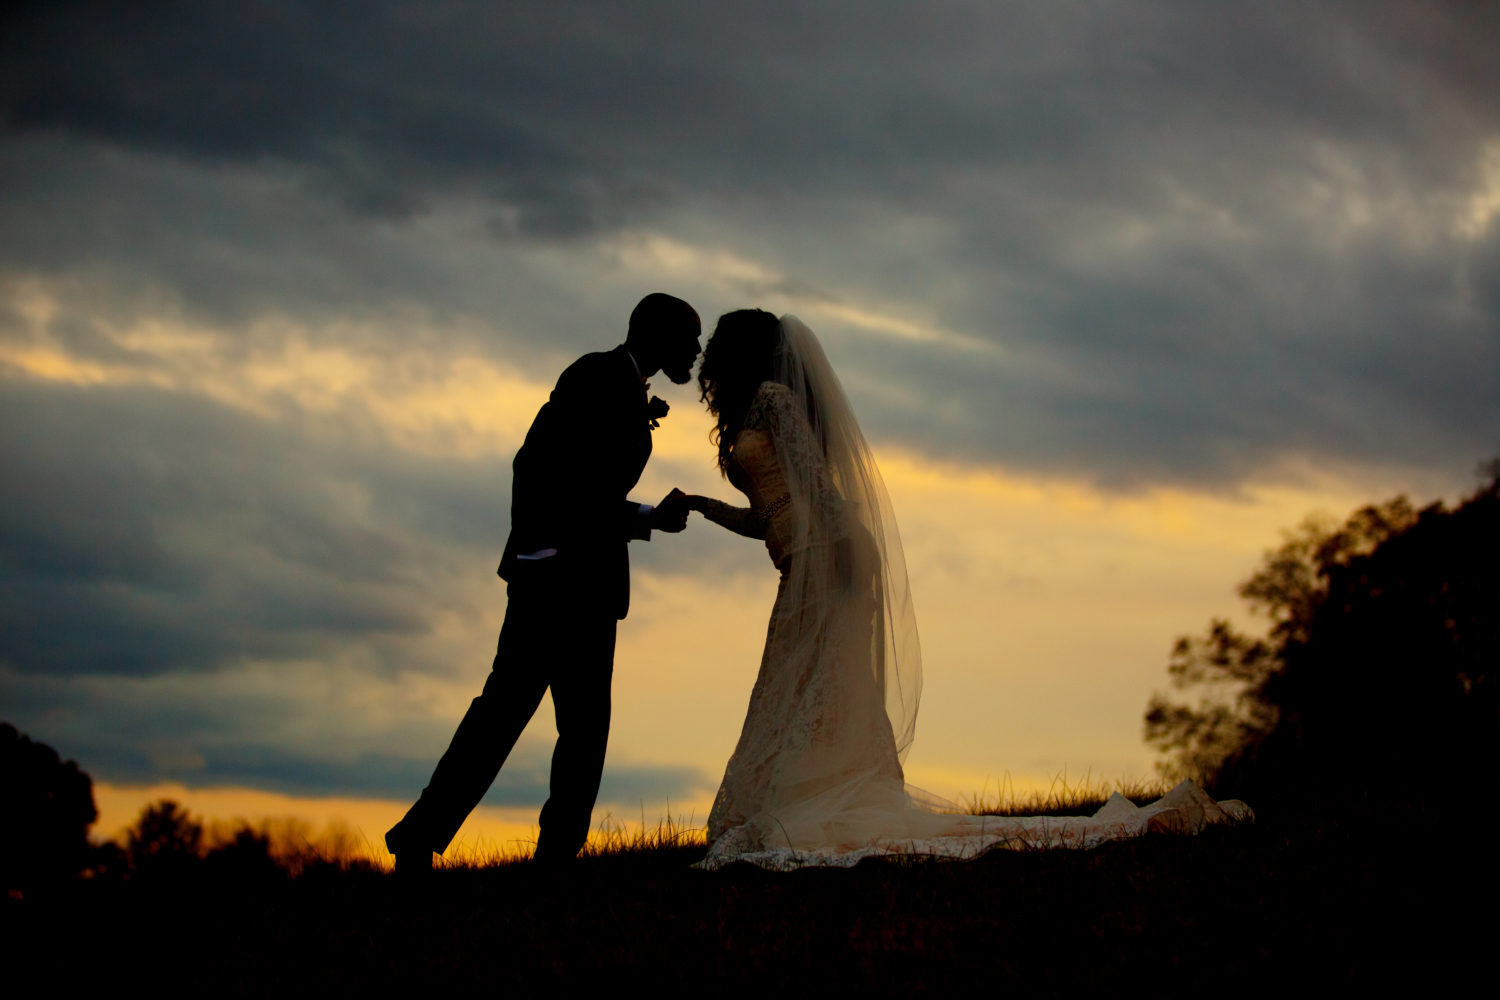 Sunset kiss at Storybrook Farm by Cable Photography